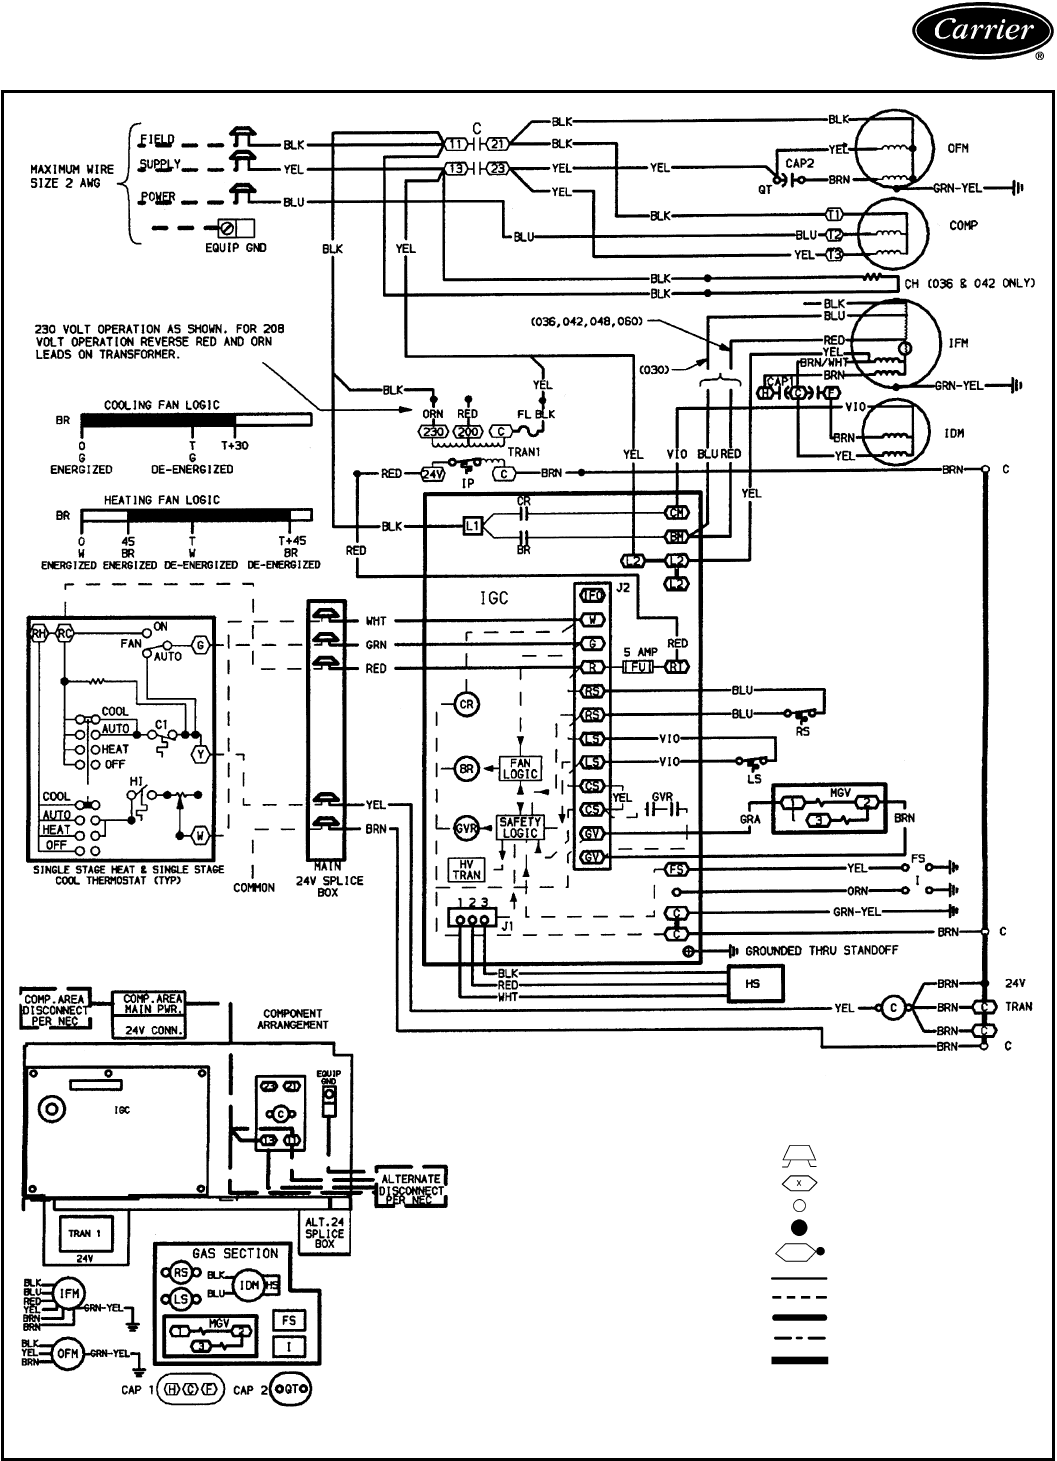 595e8aca 1cba 4ce6 ac3f ef414be0010d bg16 wiring diagram for carrier furnace readingrat net honeywell truesteam wiring diagram at eliteediting.co